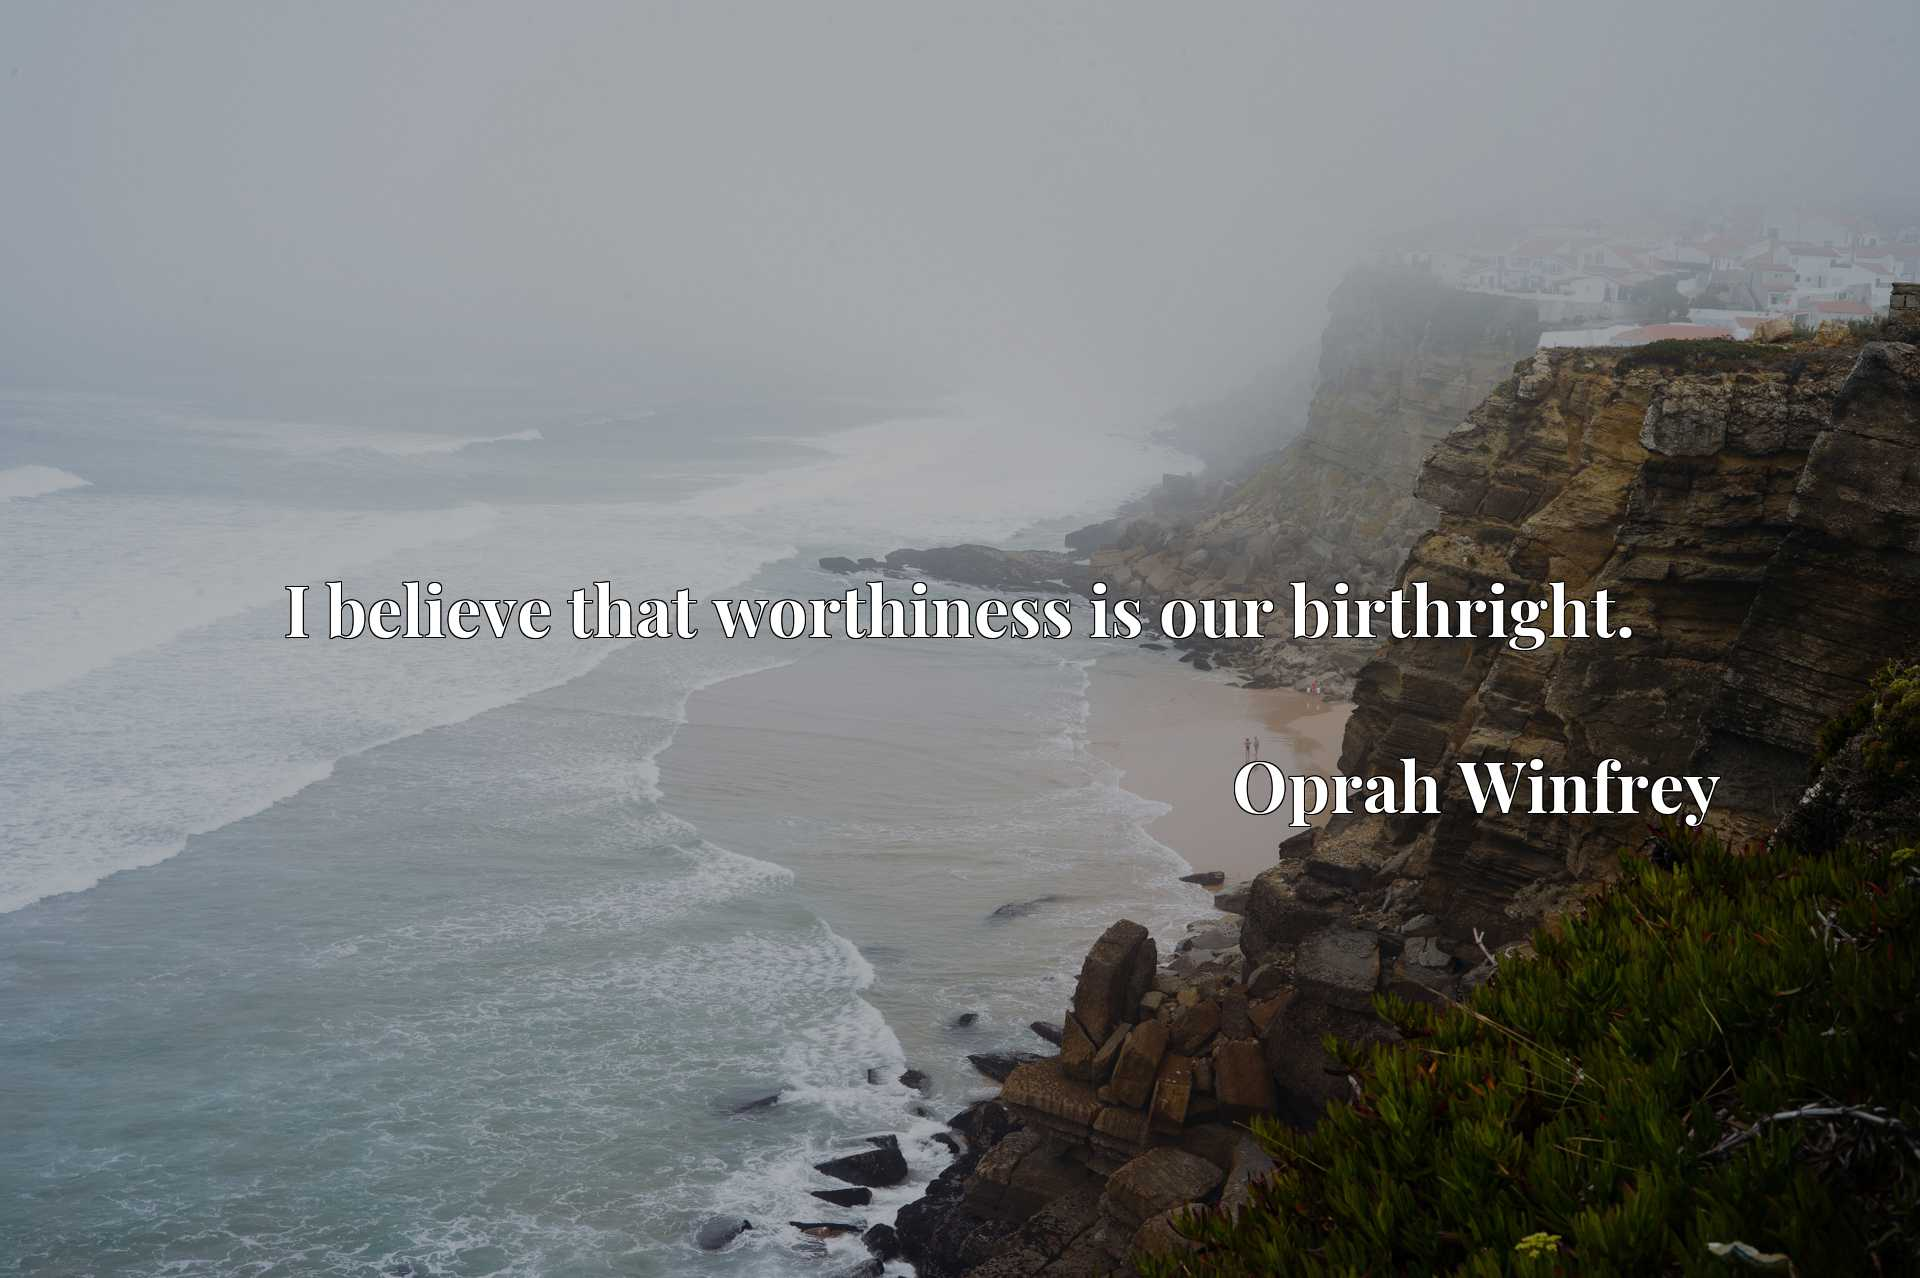 I believe that worthiness is our birthright.